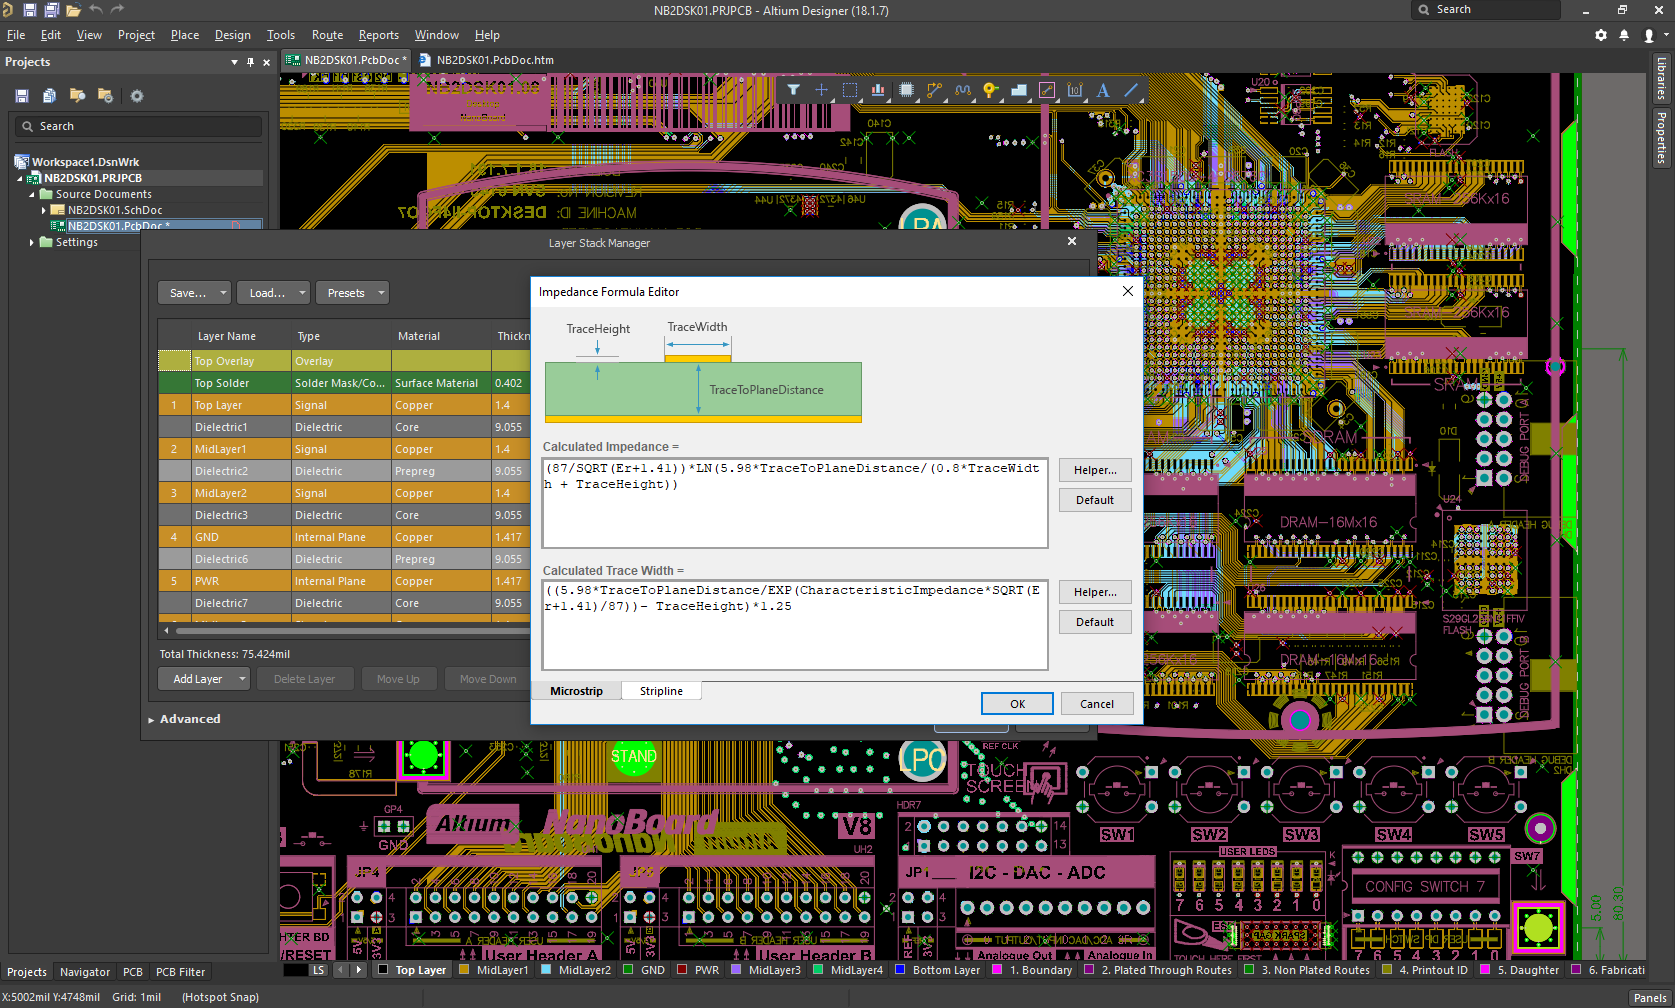 Impedance Formula Editor within Altium's Layer Stack Manager